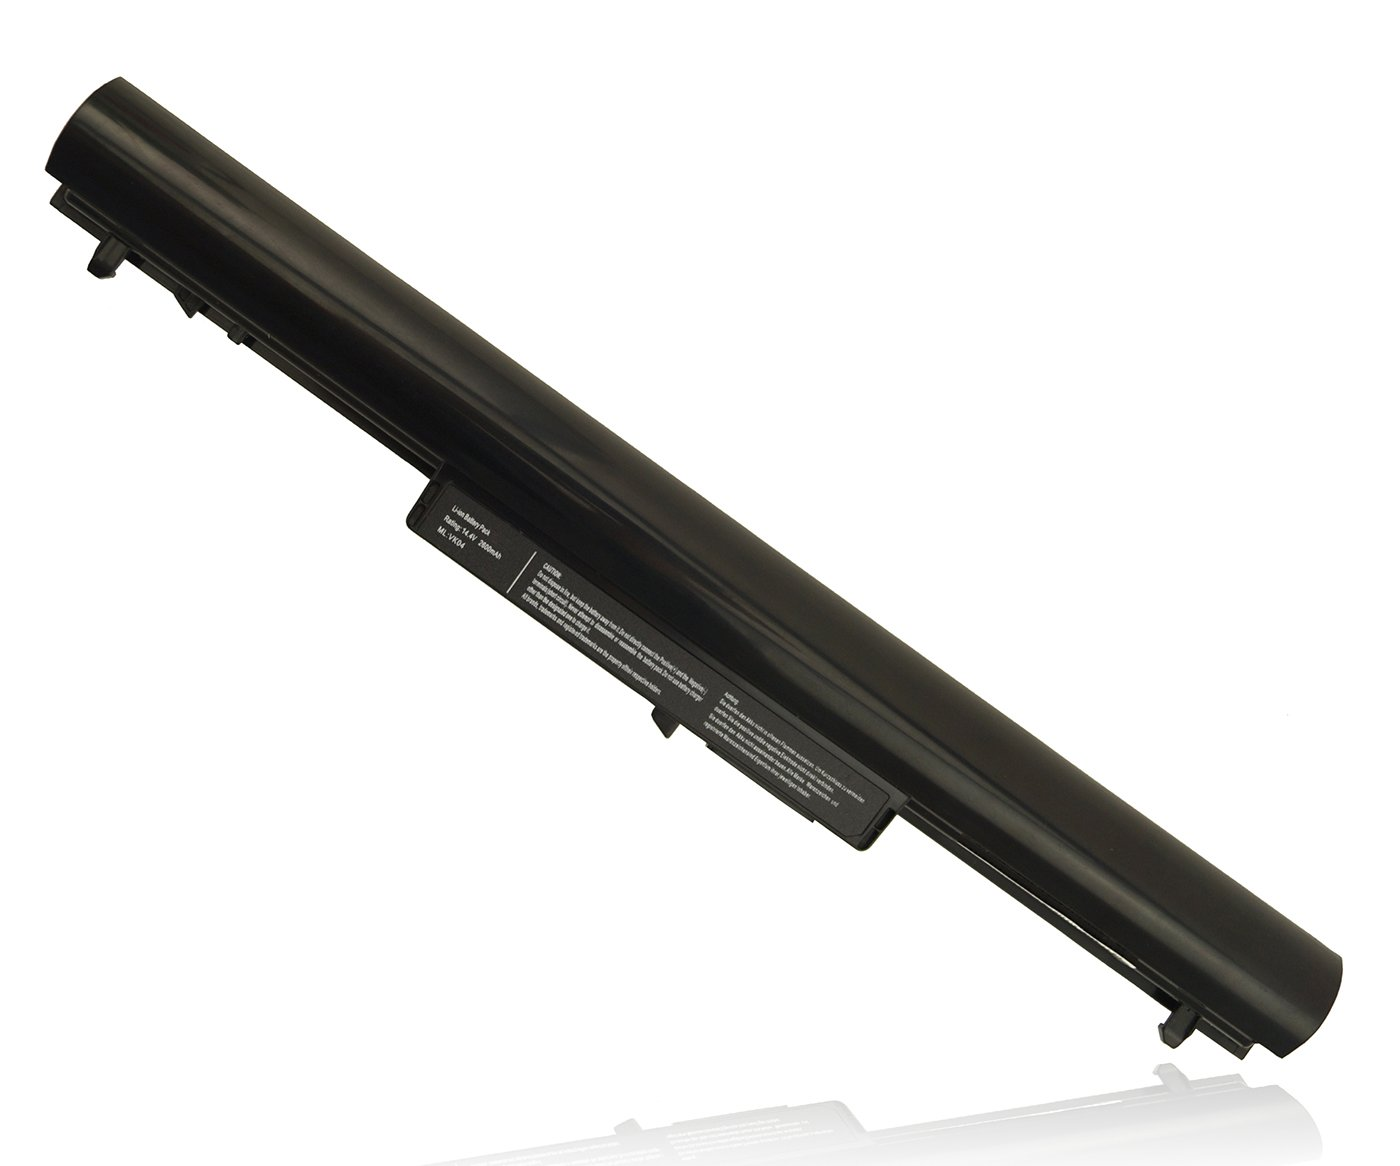 695192-001 694864-851 New Laptop battery for HP Pavilion VK04 HSTNN-YB4D HSTNN-DB4D H4Q45AA;Sleekbook 14-b000 15-b000 Pavilion Ultrabook 14-b000-14.4V ...